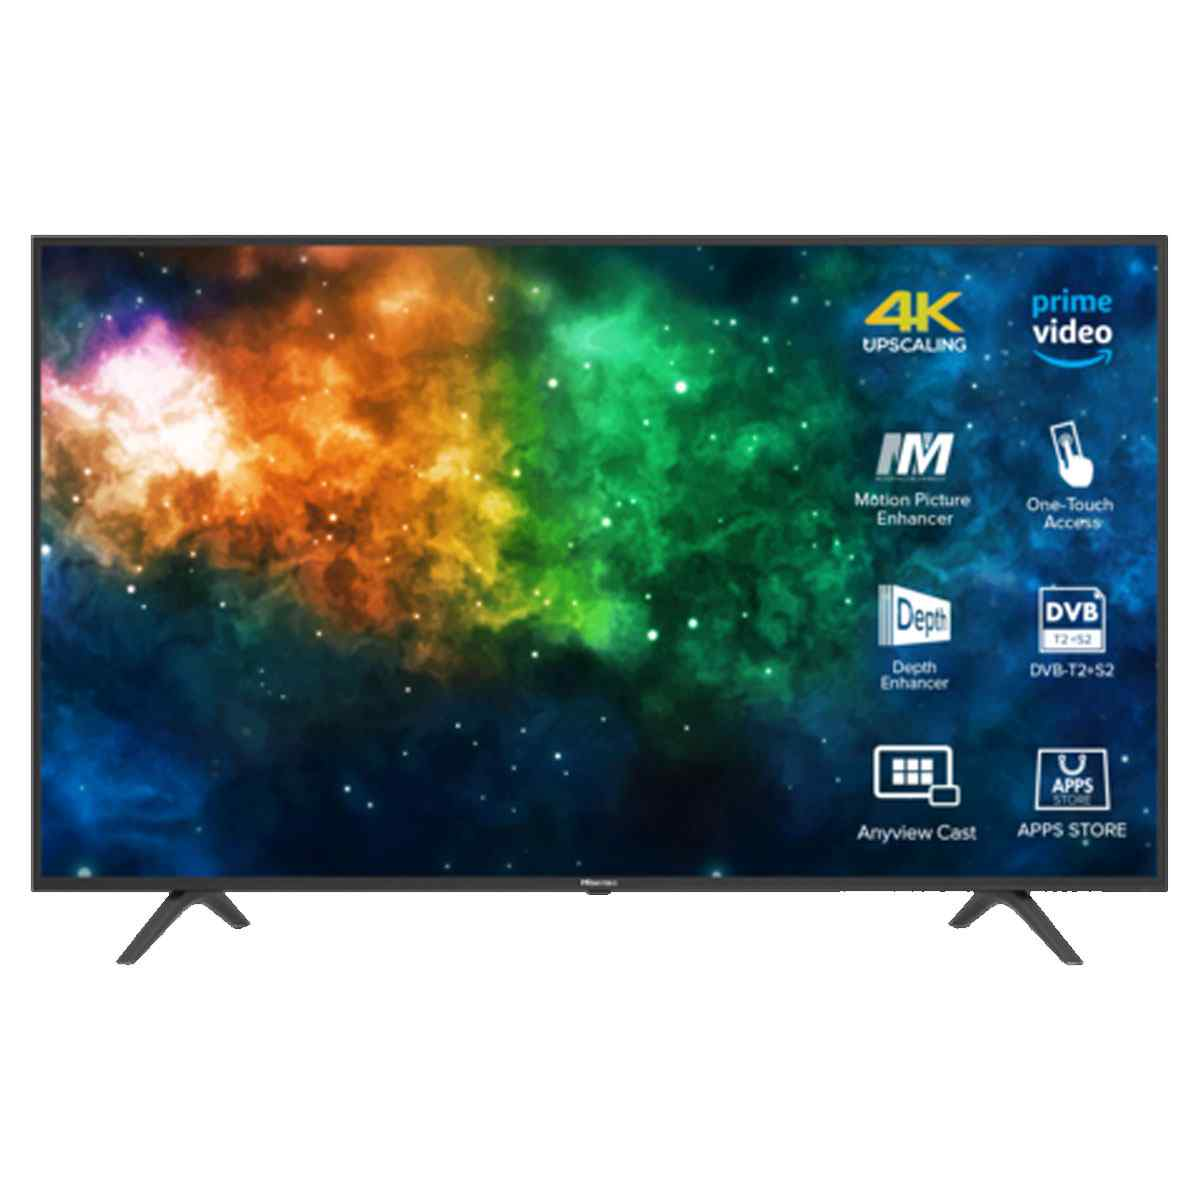 Hisense 50 Inch 4K UHD Smart LED TV (50A6502)